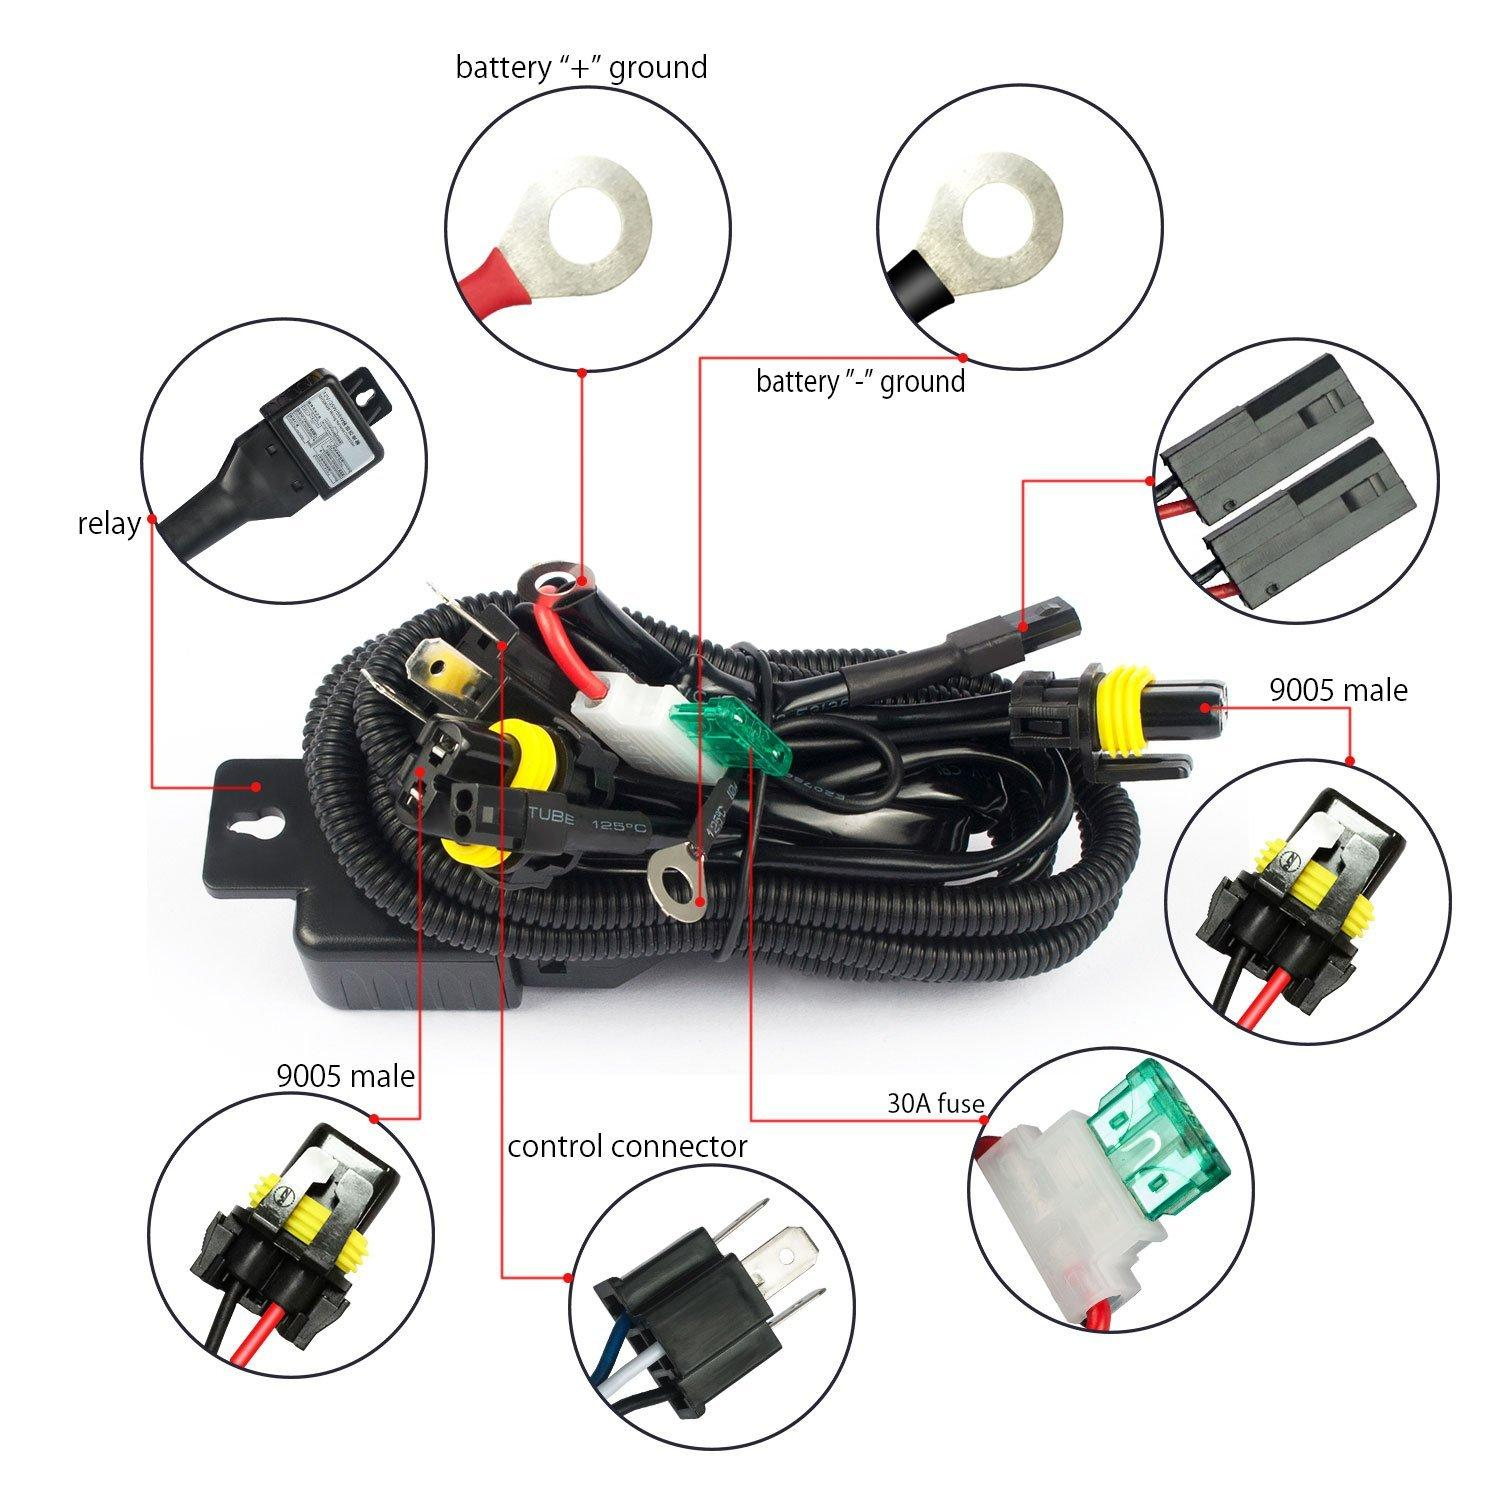 H13 Wiring Harness | Wiring Schematic Diagram on h13 hid wiring, dodge oem parts diagram, project diagram, h13 bulb wiring, h13 connector diagram,